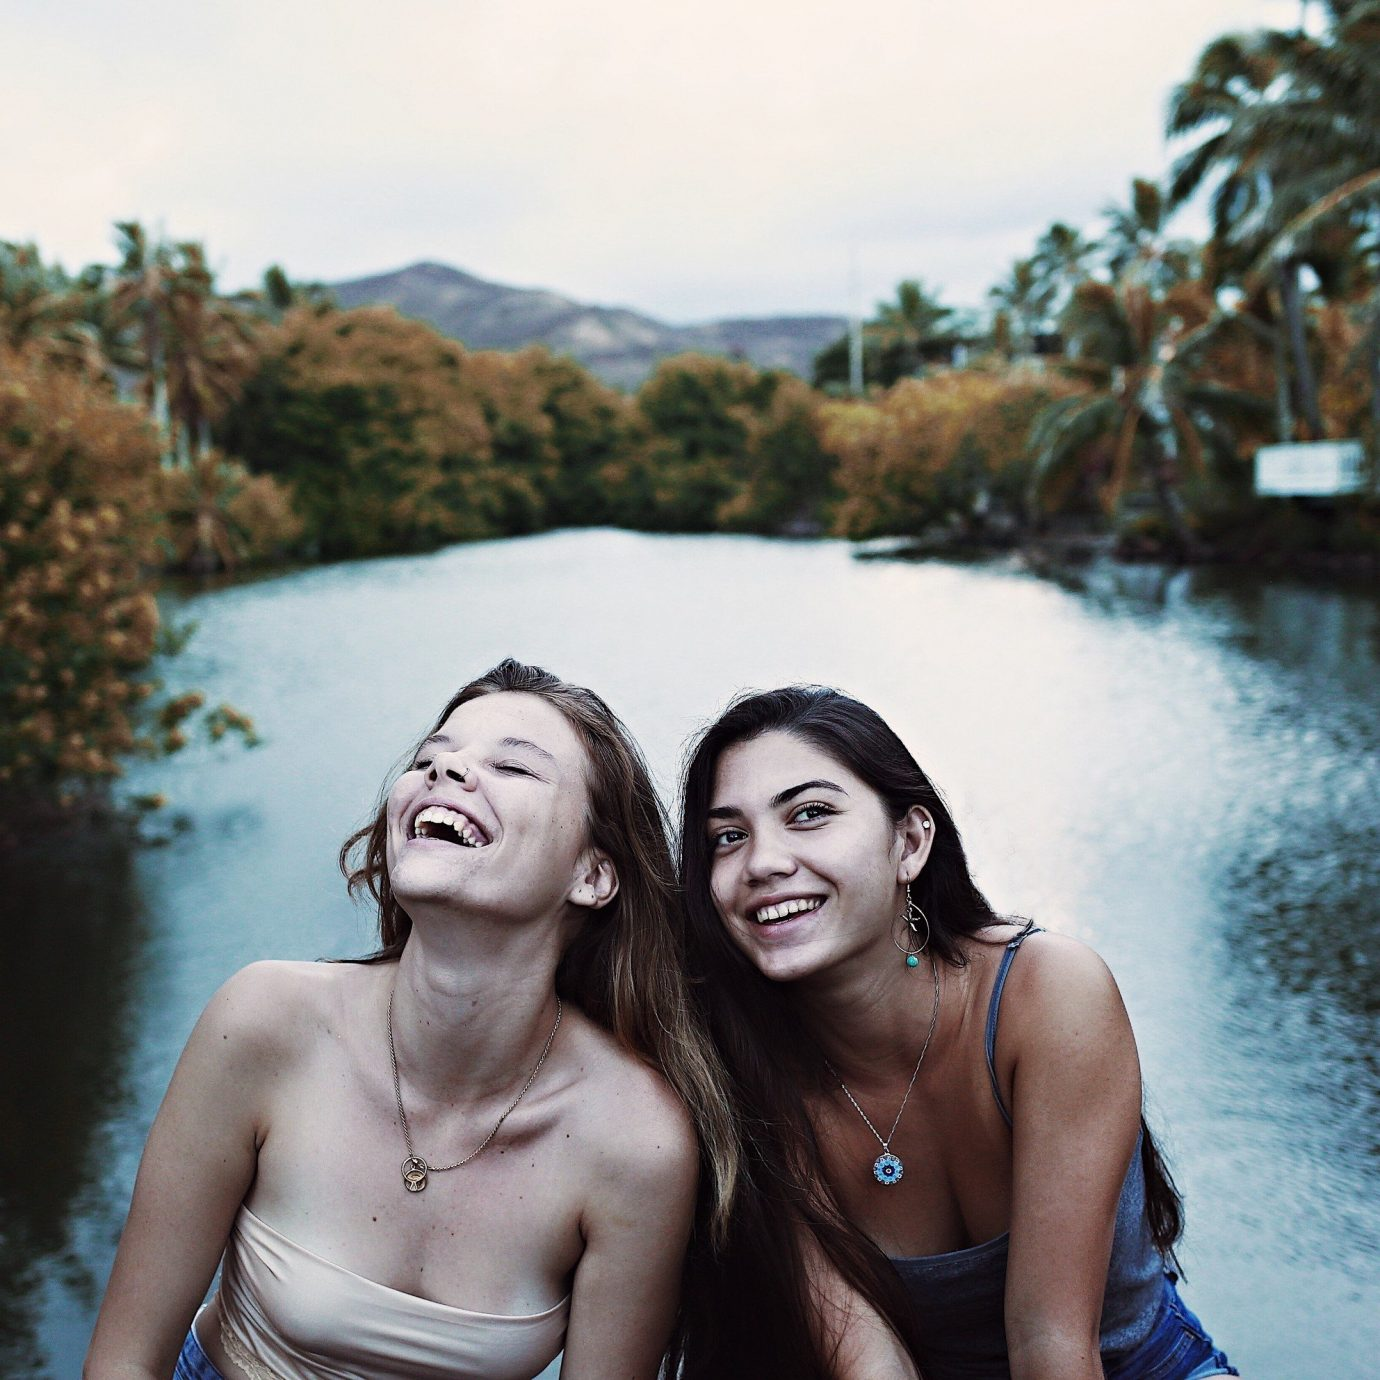 Packing Tips Travel Shop water sky outdoor person tree photograph Beauty fun girl photography vacation River smile leisure happiness Lake swimsuit posing